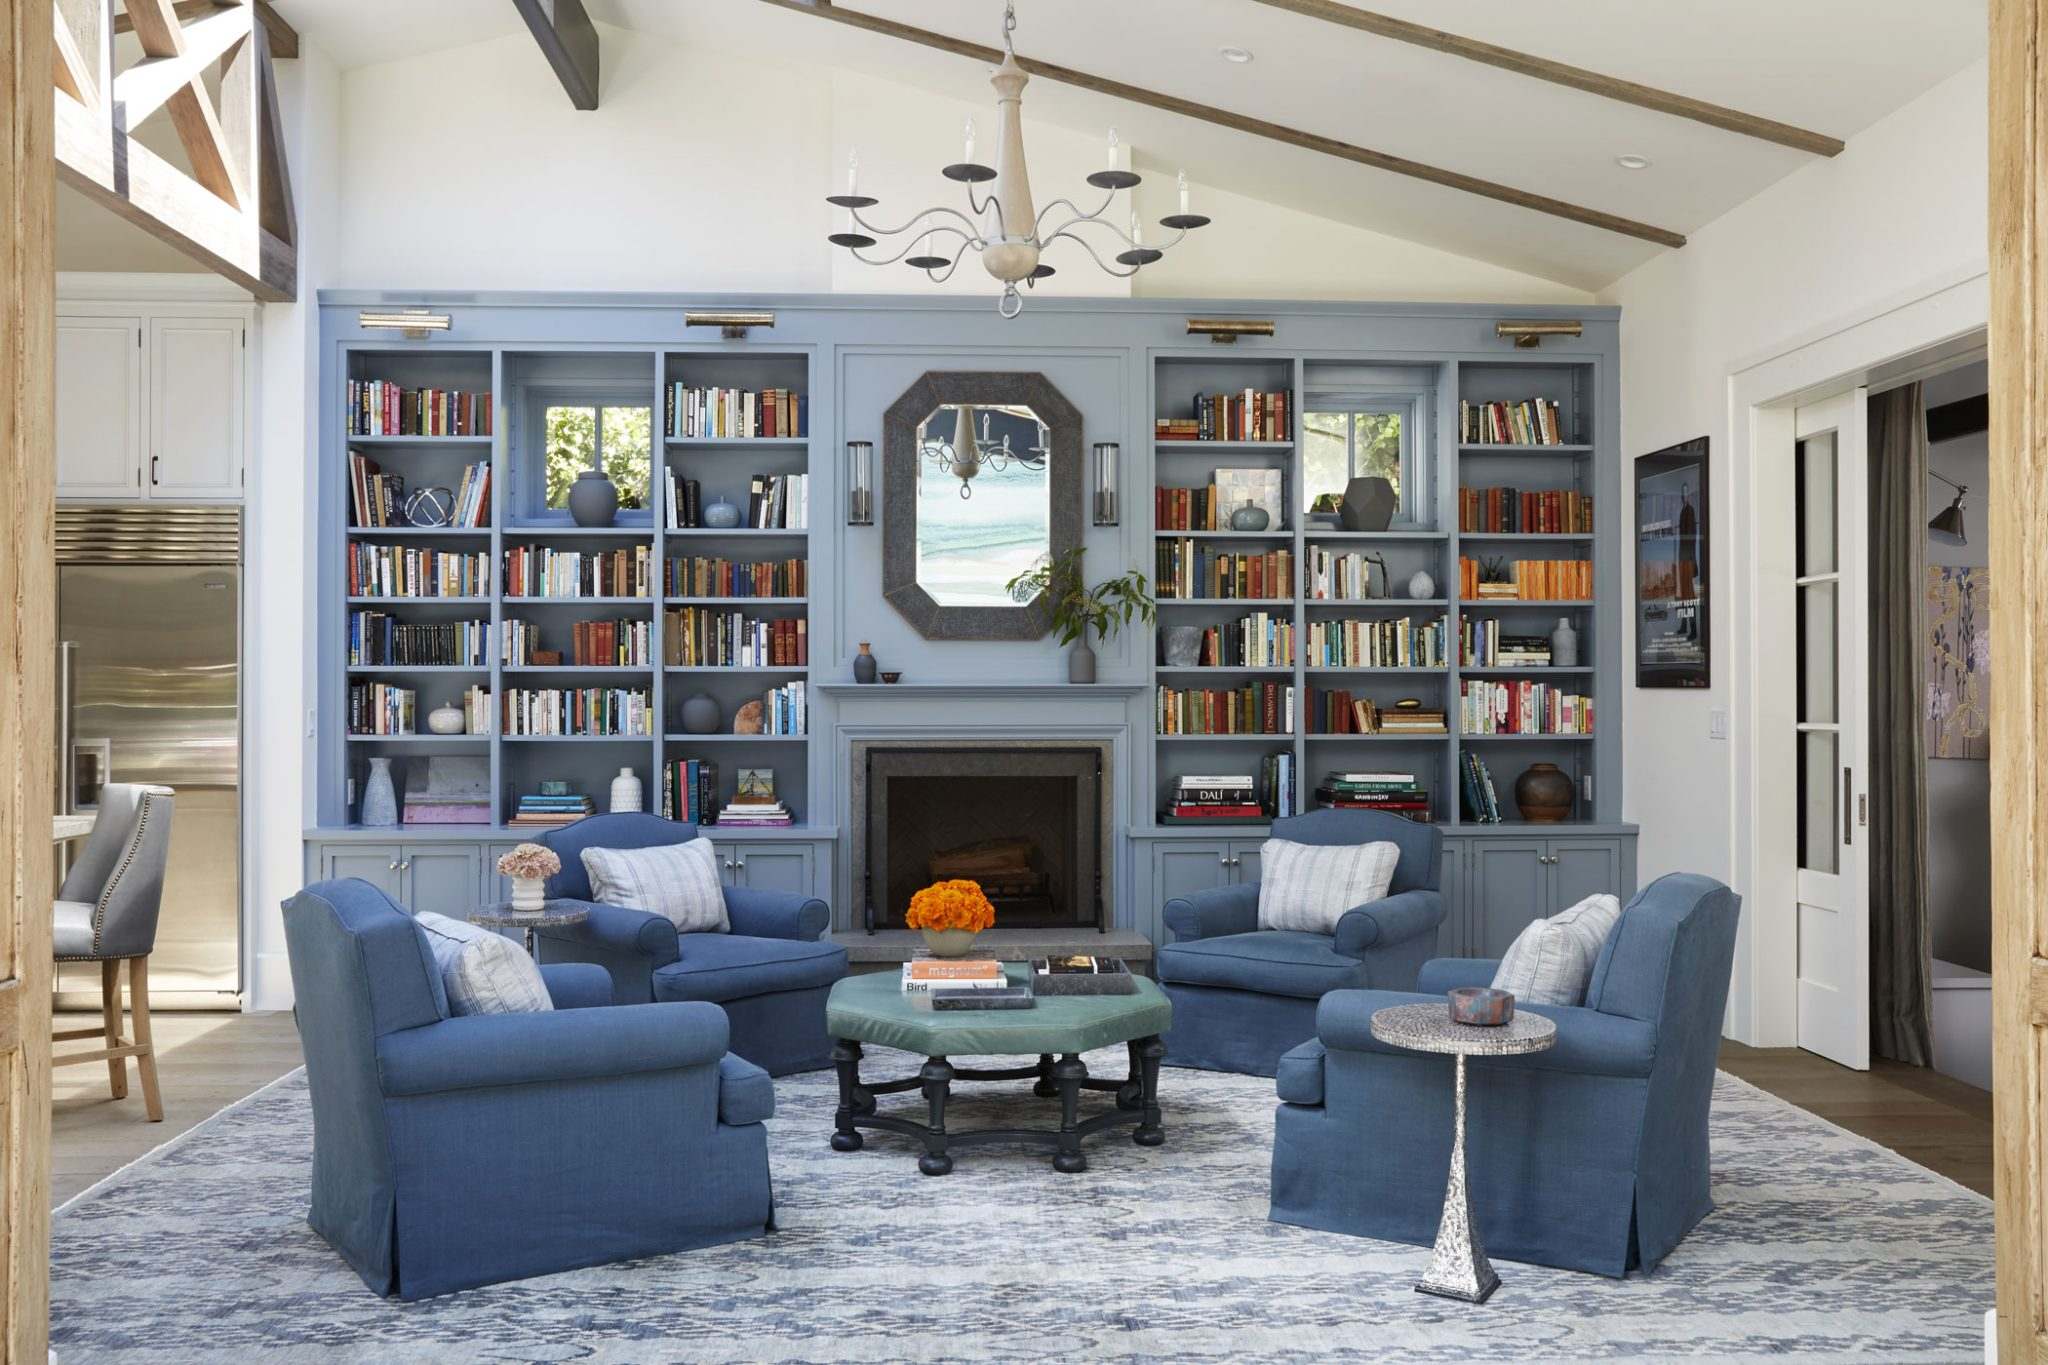 Family Room in a Ranch House Renovation by Tim Barber Ltd.